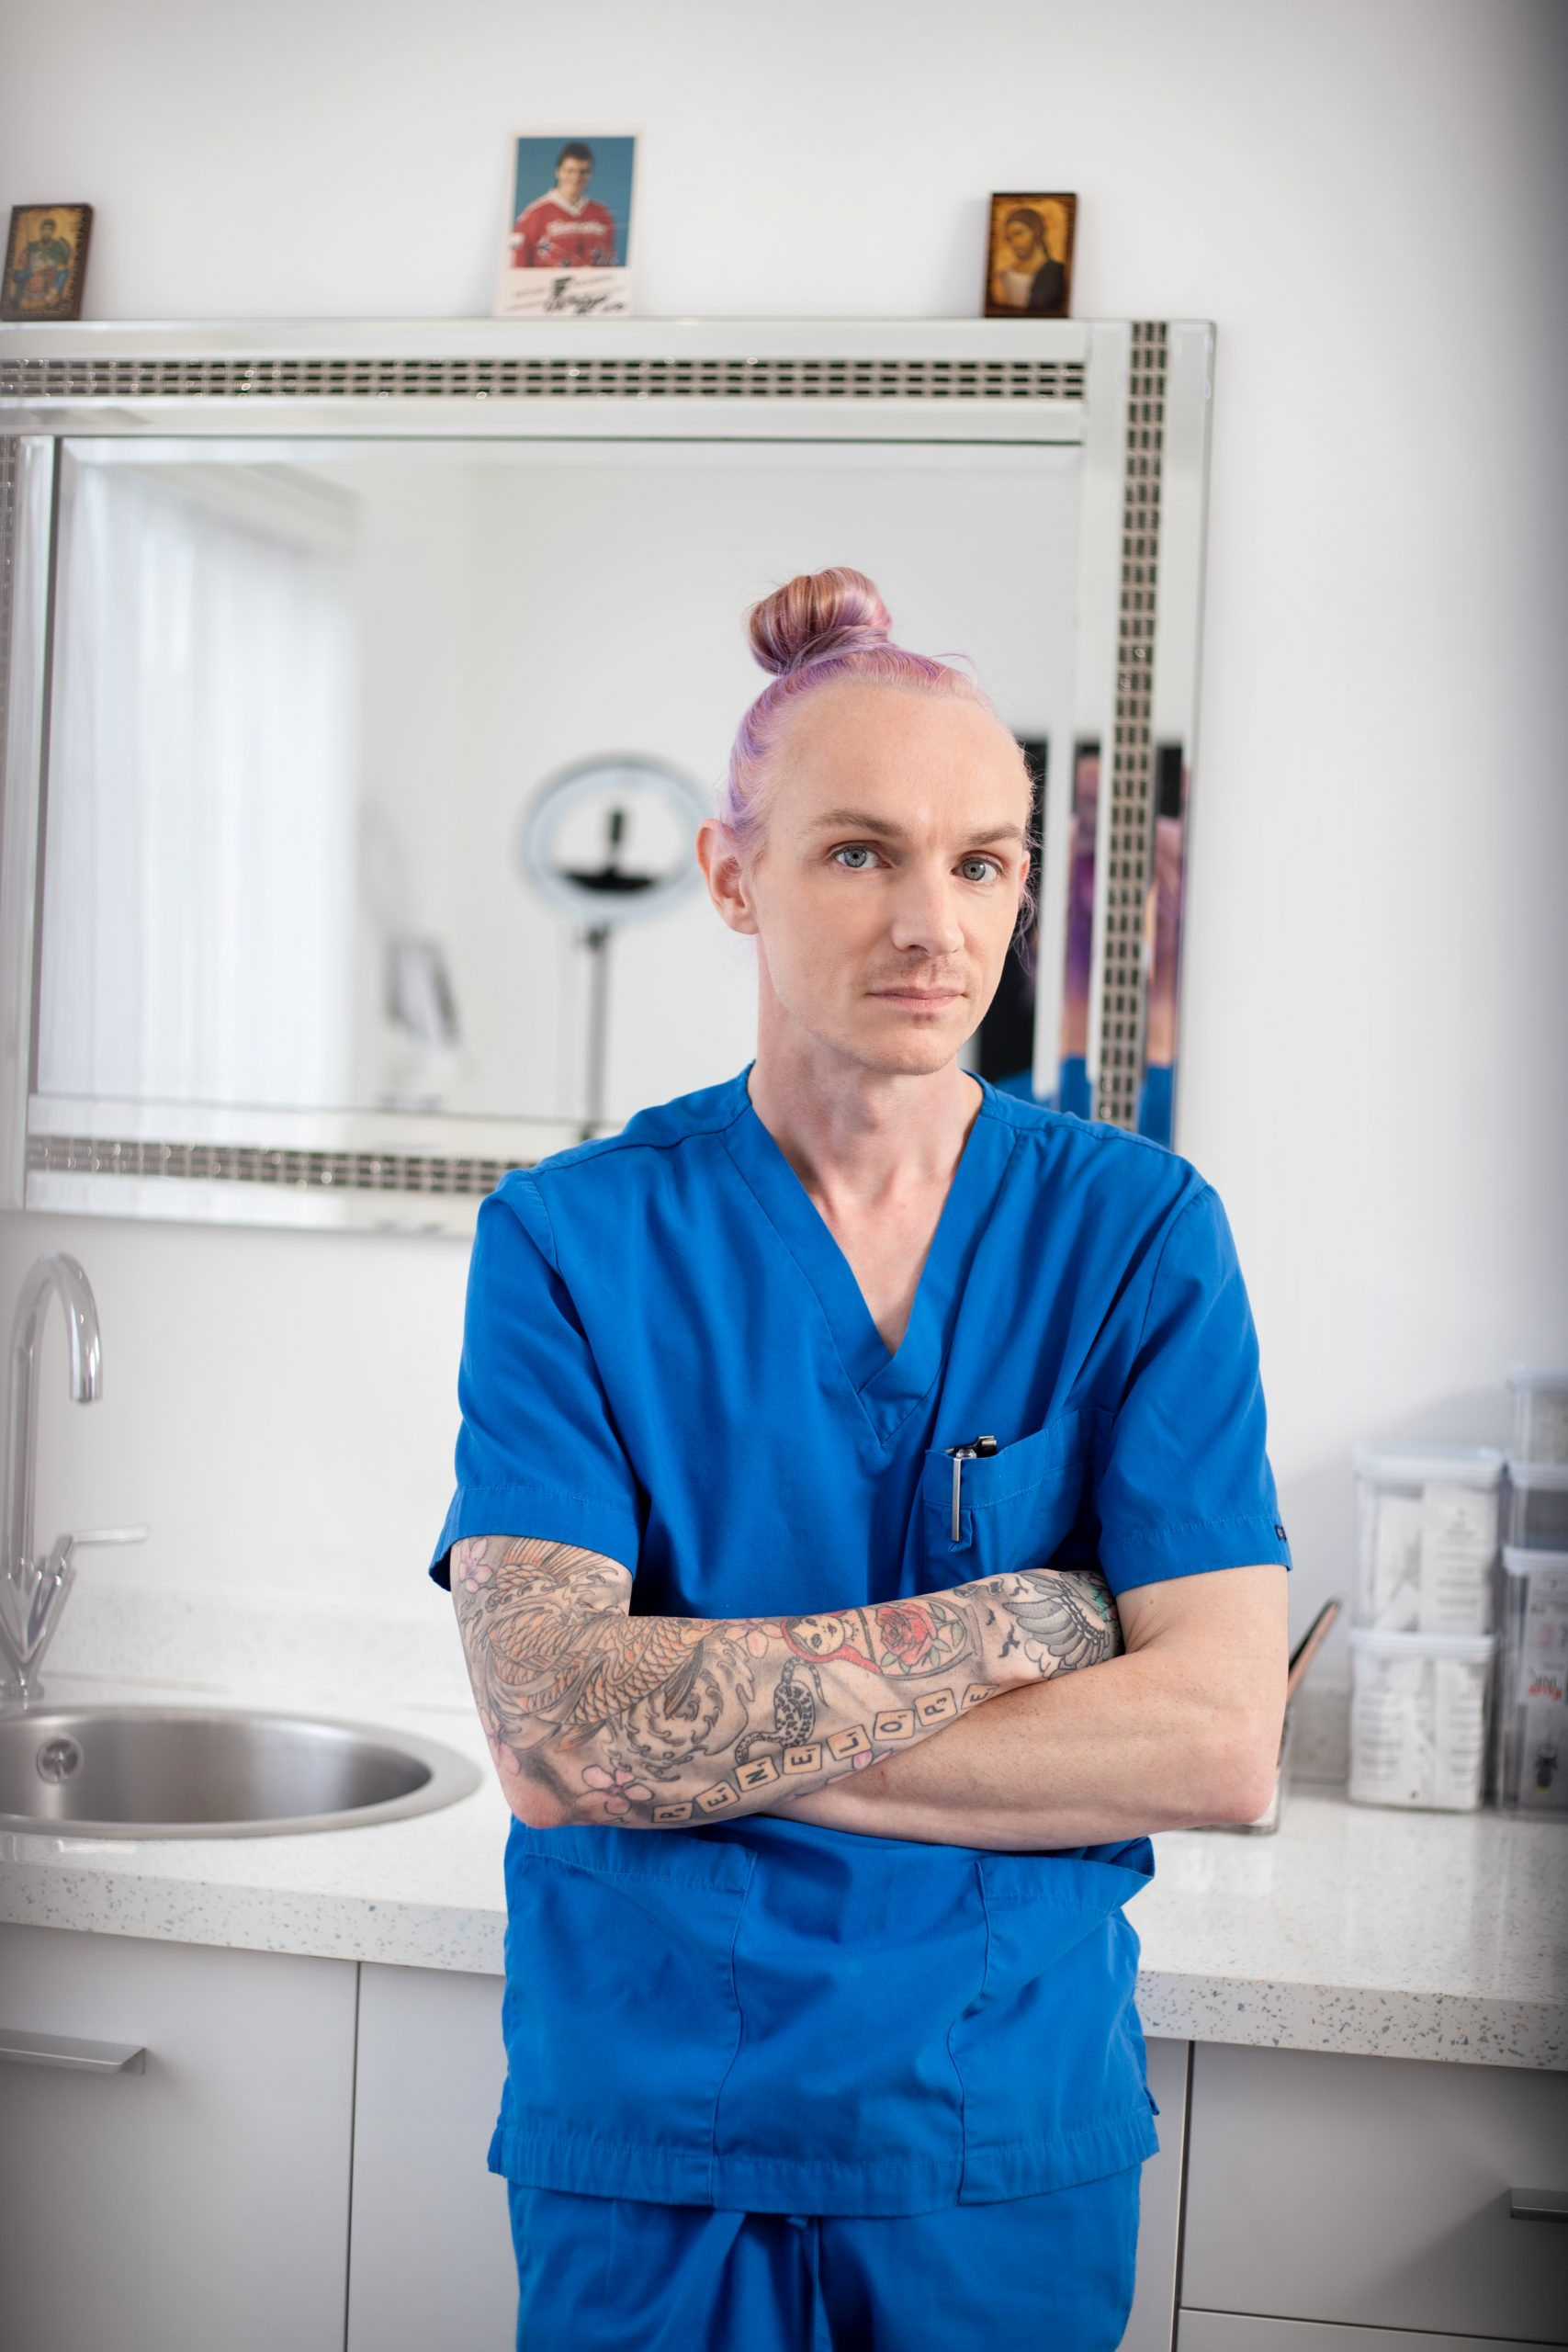 Phil standing in front of a mirror in his treatment room